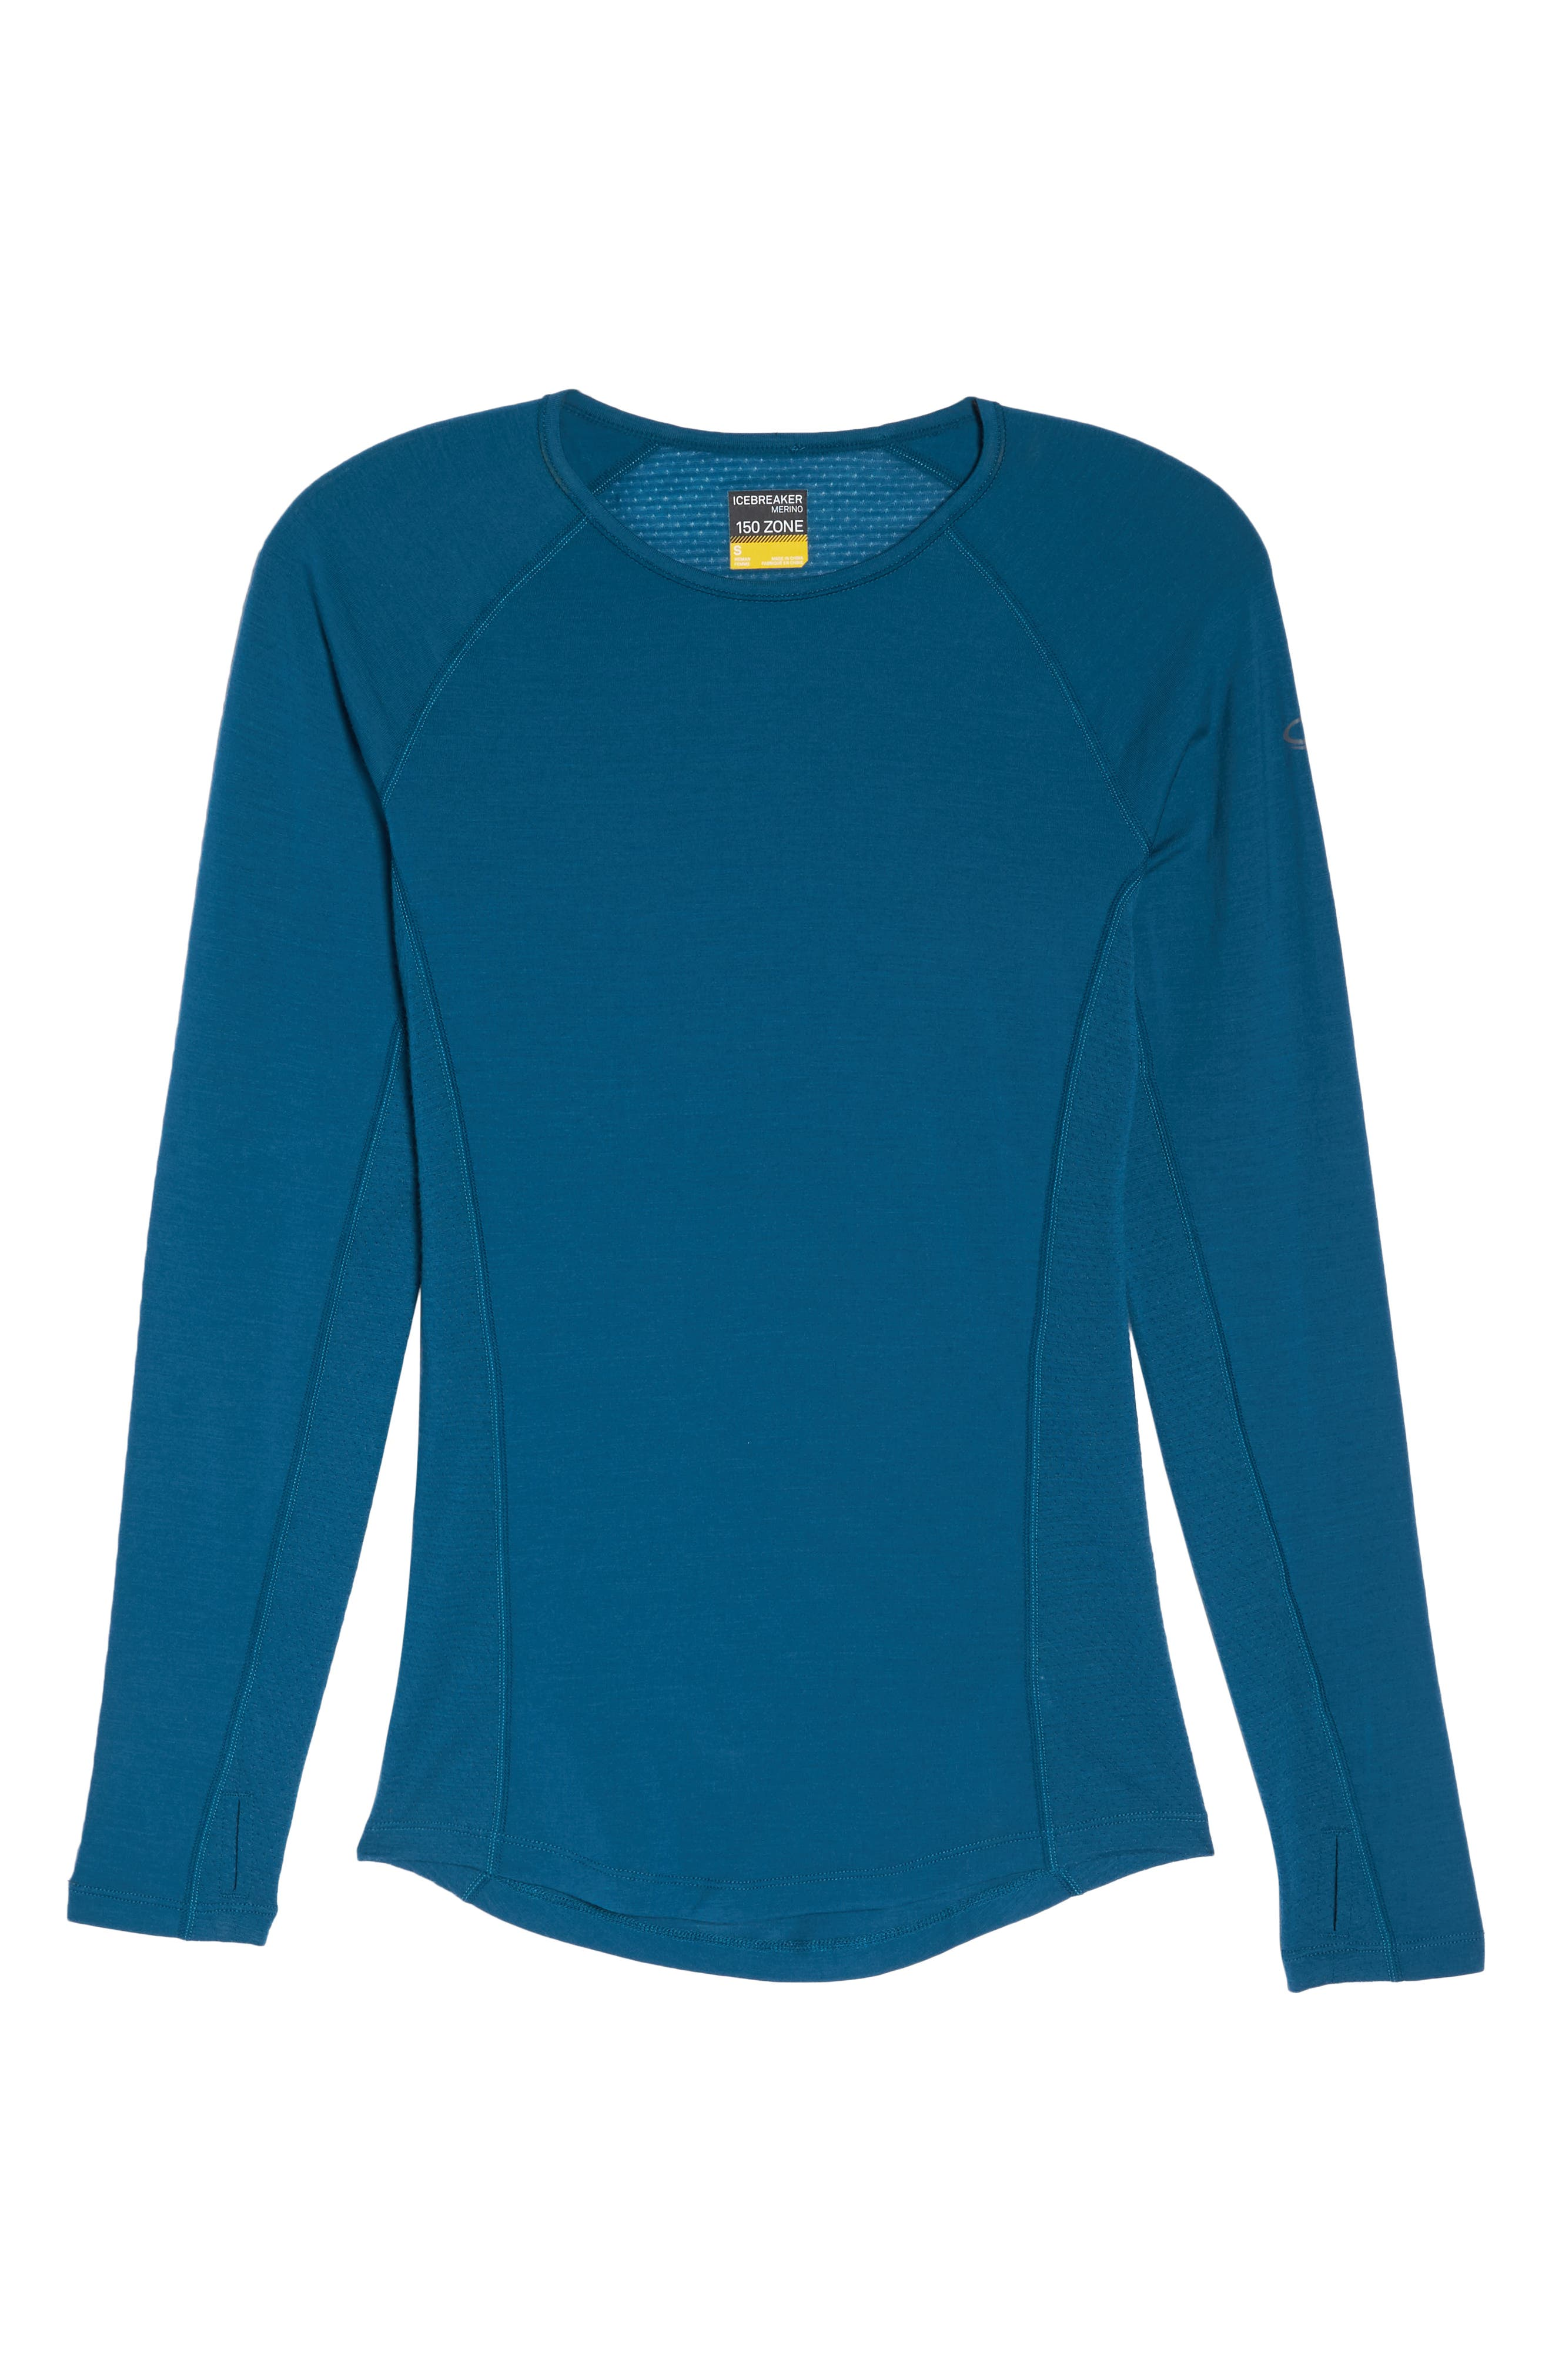 BodyfitZONE<sup>™</sup> 150 Zone Merino Wool Blend Base Layer Tee,                             Alternate thumbnail 7, color,                             KING FISCHER/ ARCTIC TEAL